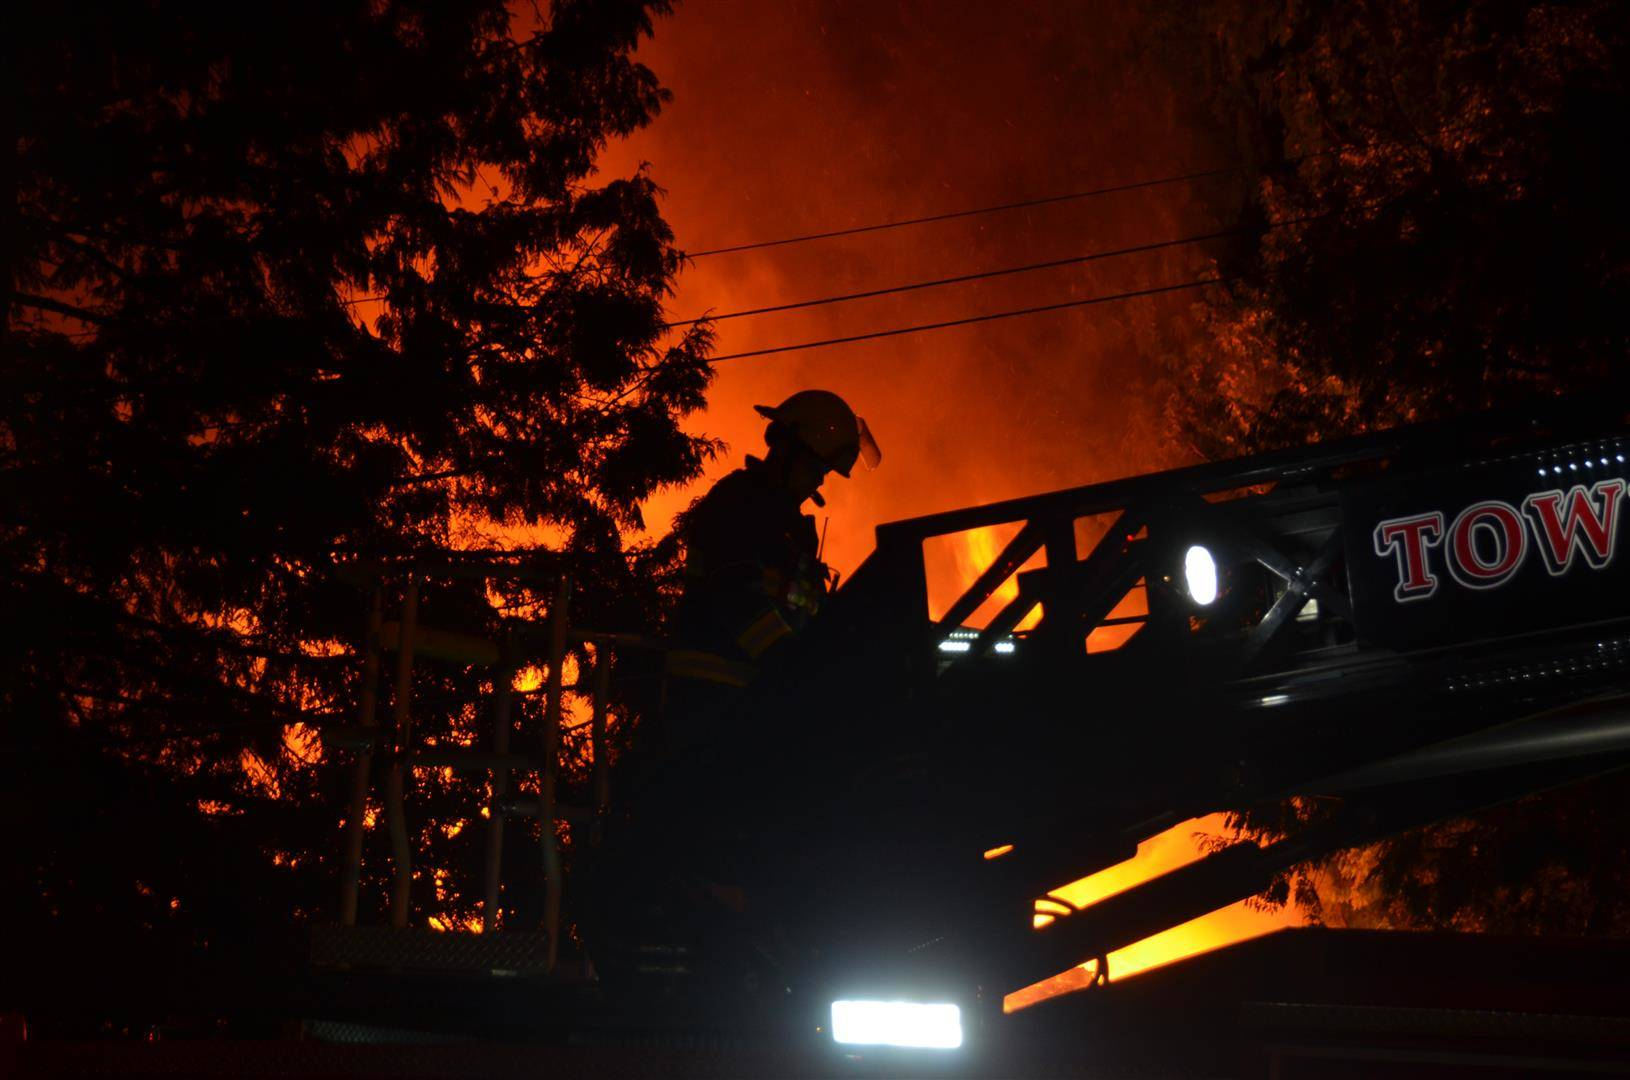 Township firefighters received multiple reports of a fire around 12:08 a.m. Monday, July 27, 2020 in the Yorkson neighbourhood. Crews arrived to a home at 20559 86 Ave. to find the blaze spread through multiple place in the home on the property. (Curtis Kreklau/Special to Langley Advance Times)